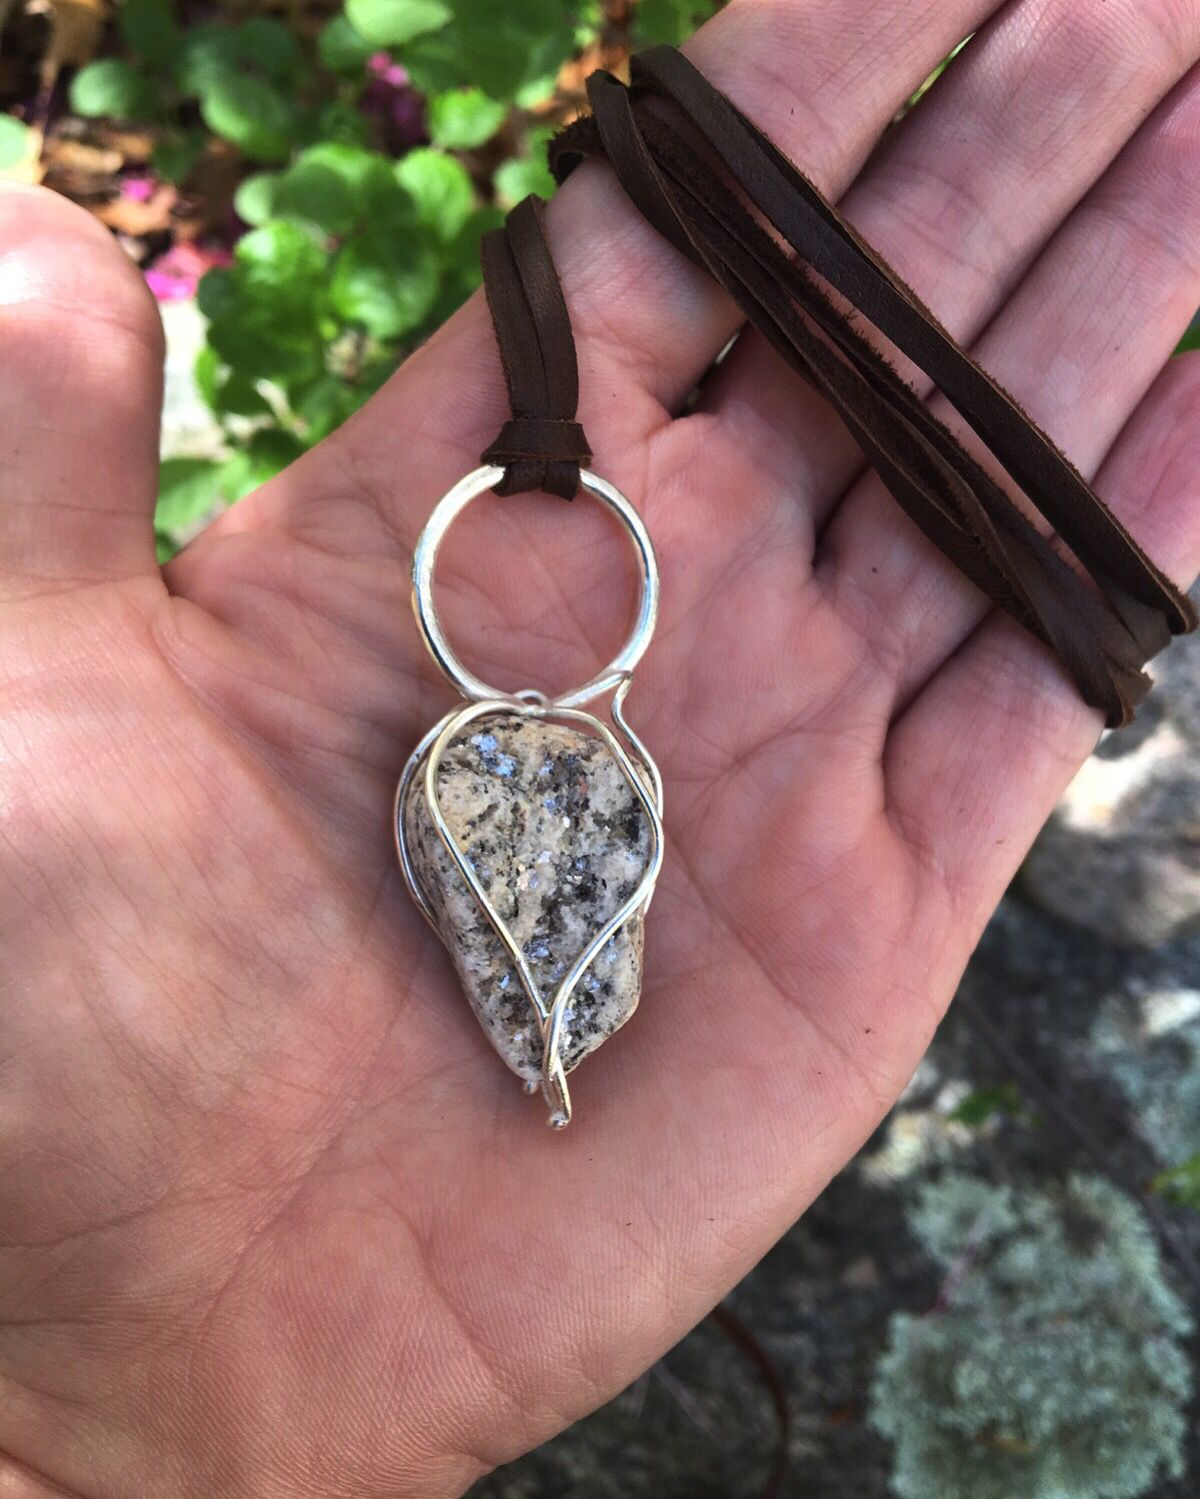 Beach stone in a Sterling cage pendant by New Territory Jewelry